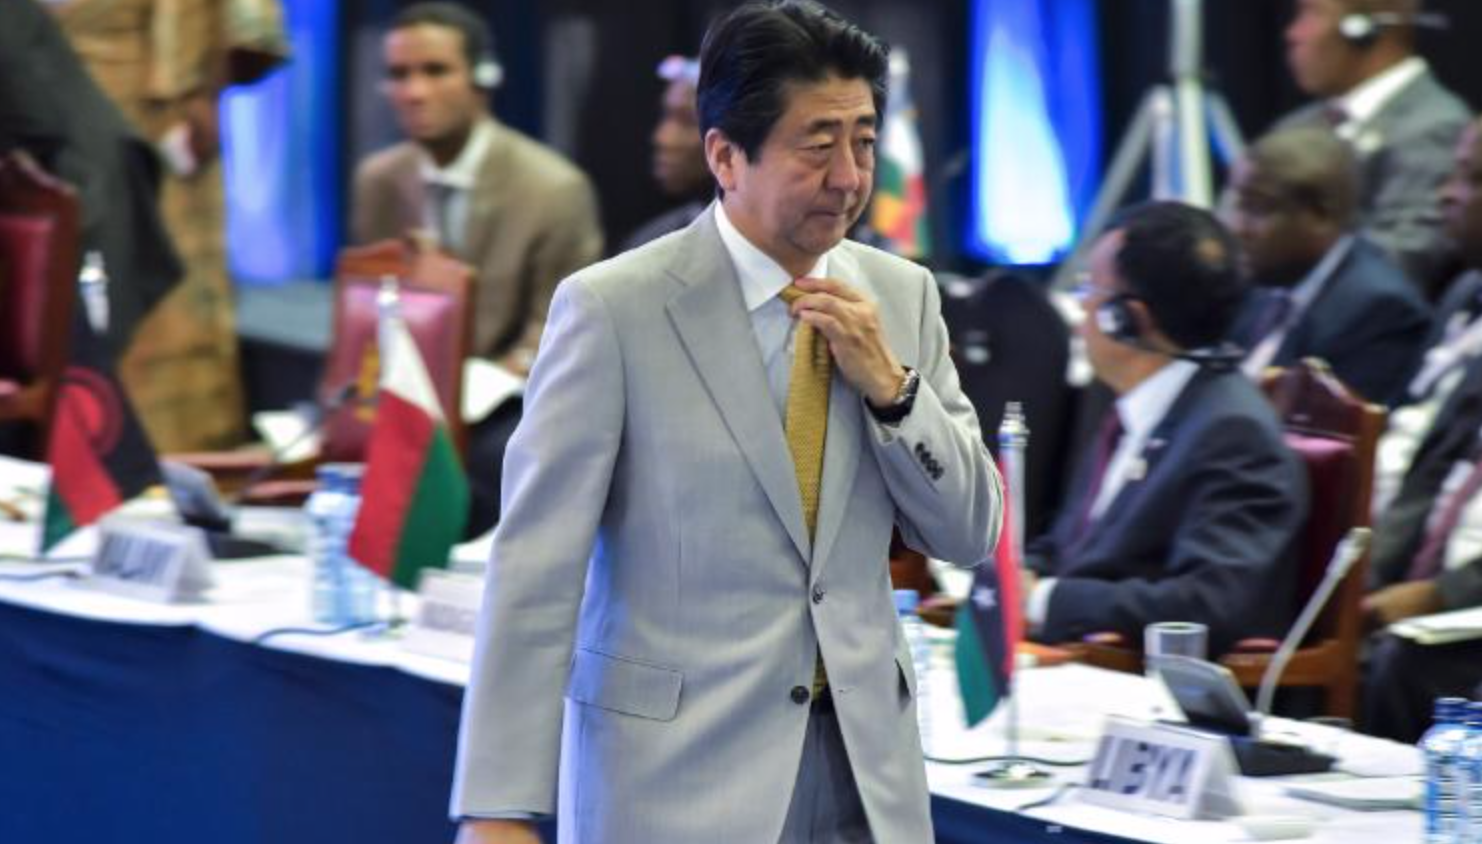 Japan takes on China with a planned $20 billion investment in Africa